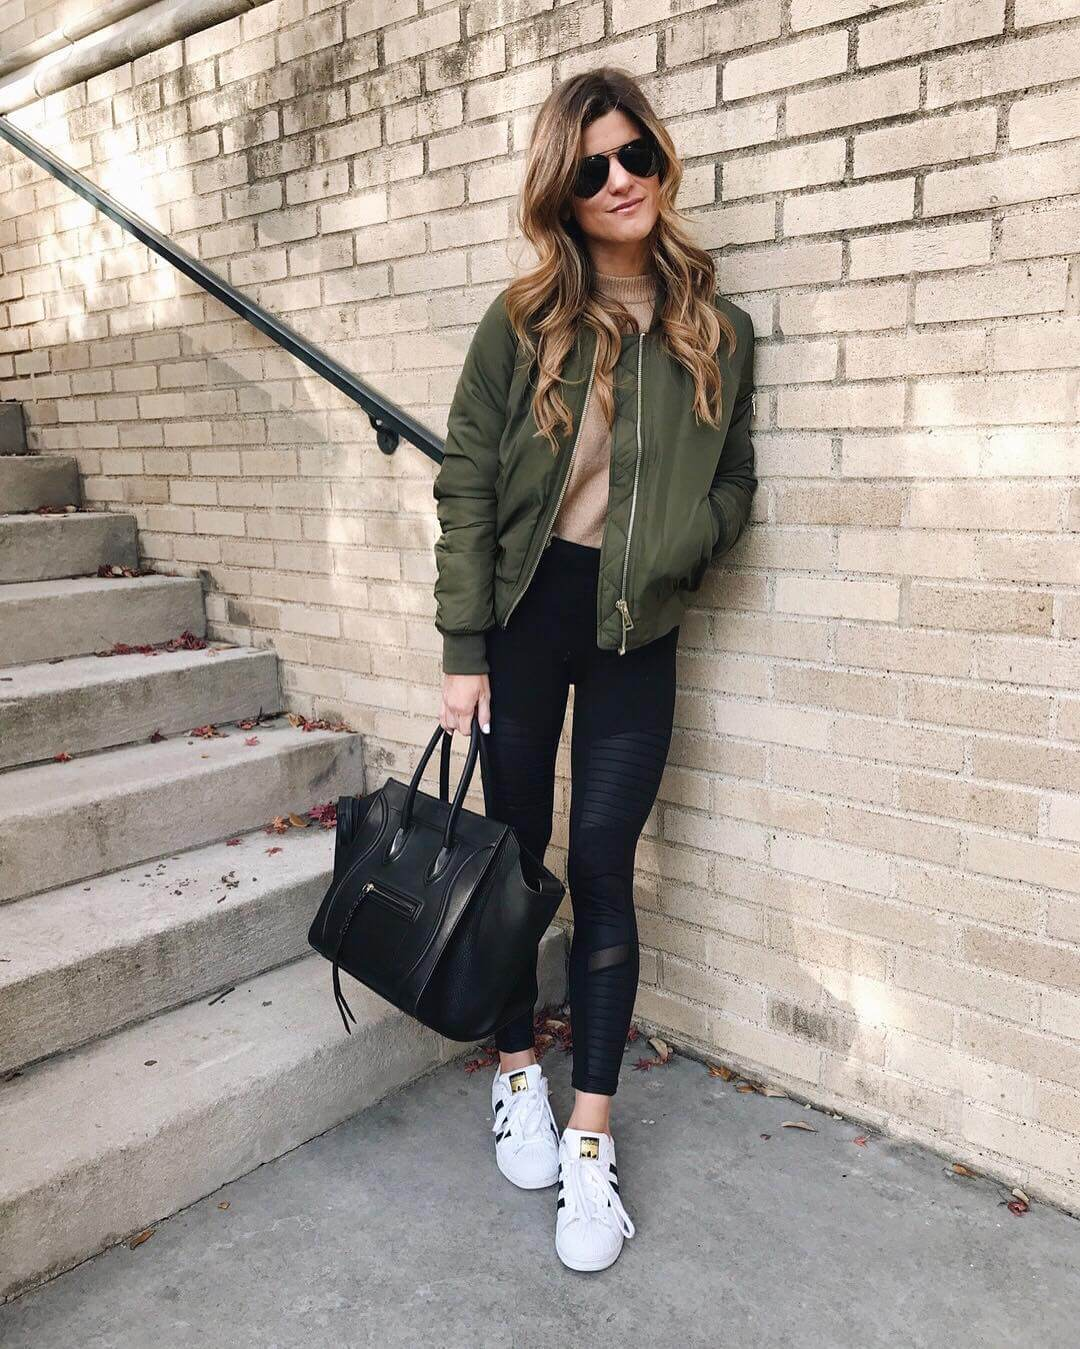 athleisure look with bomber jacket and moto leggings